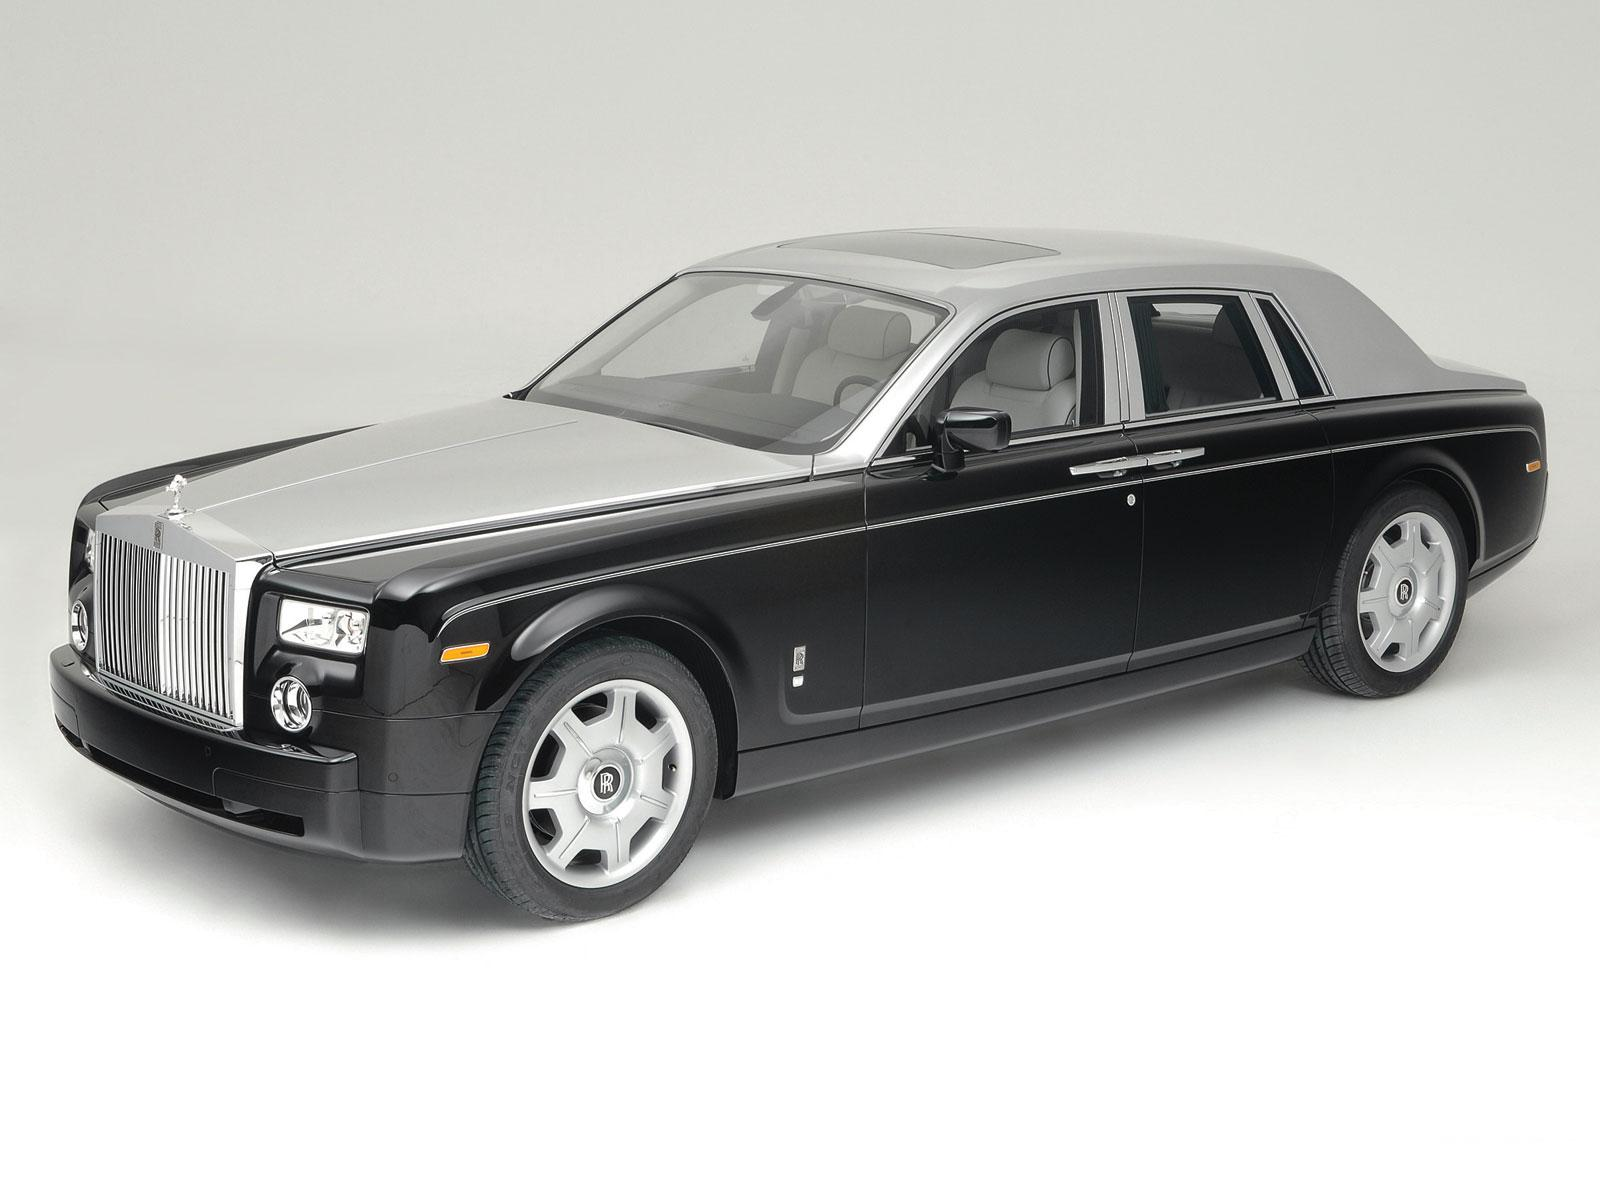 wallpaper_rolls-royce-phantom_animaatjes